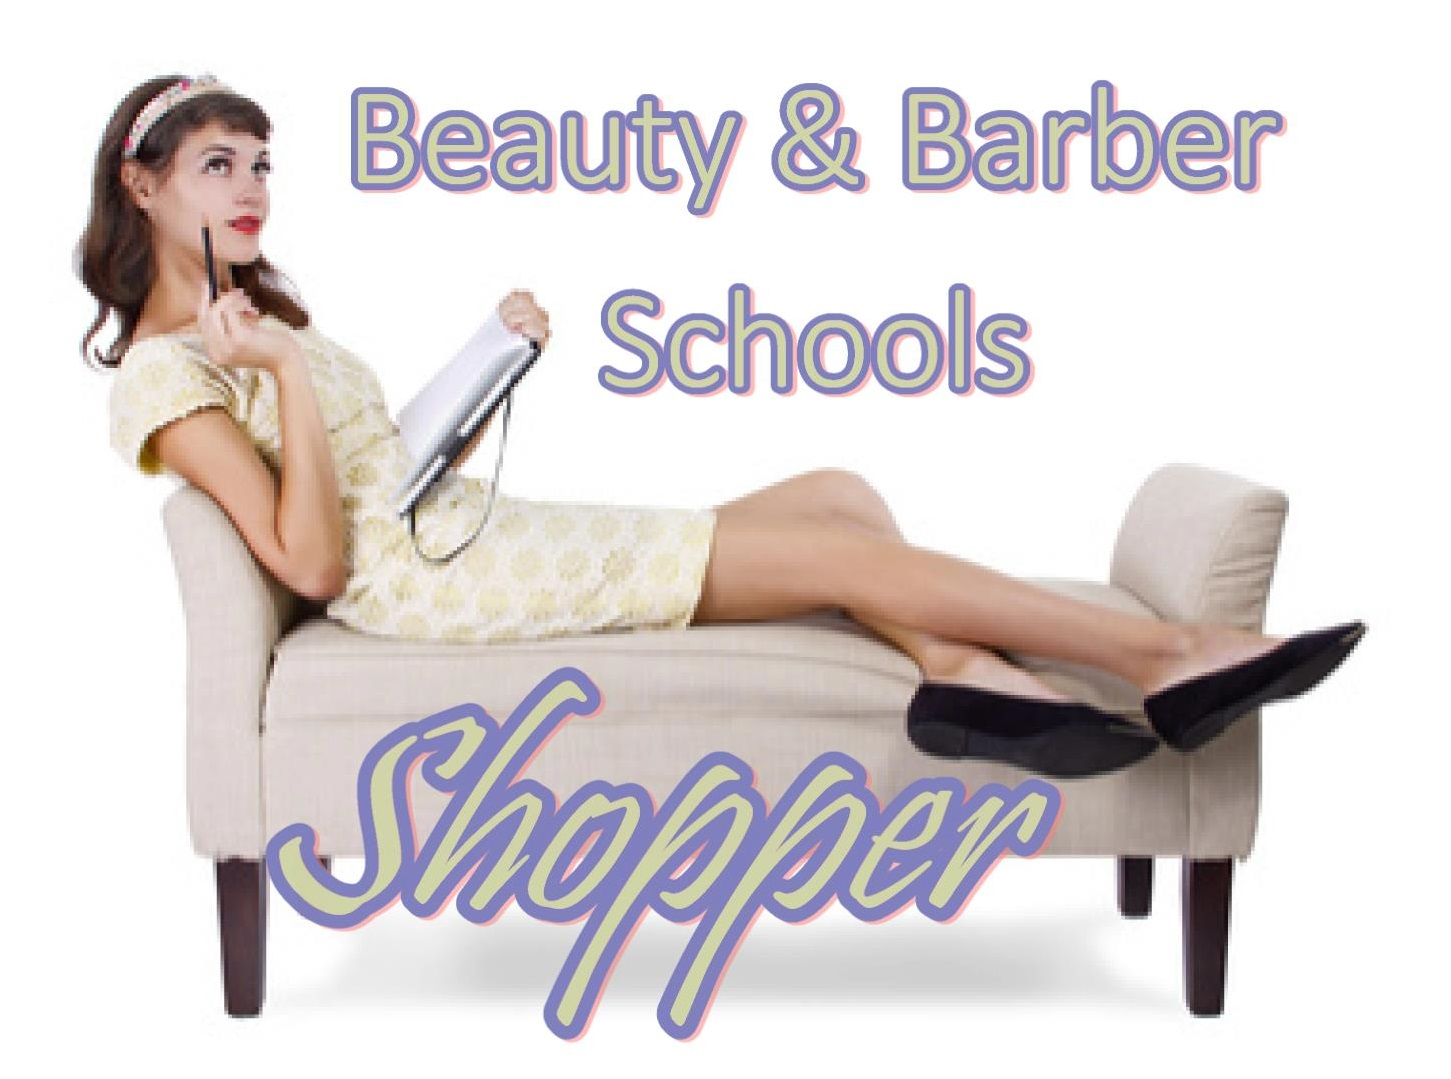 South Dakota cosmetology and barber schools